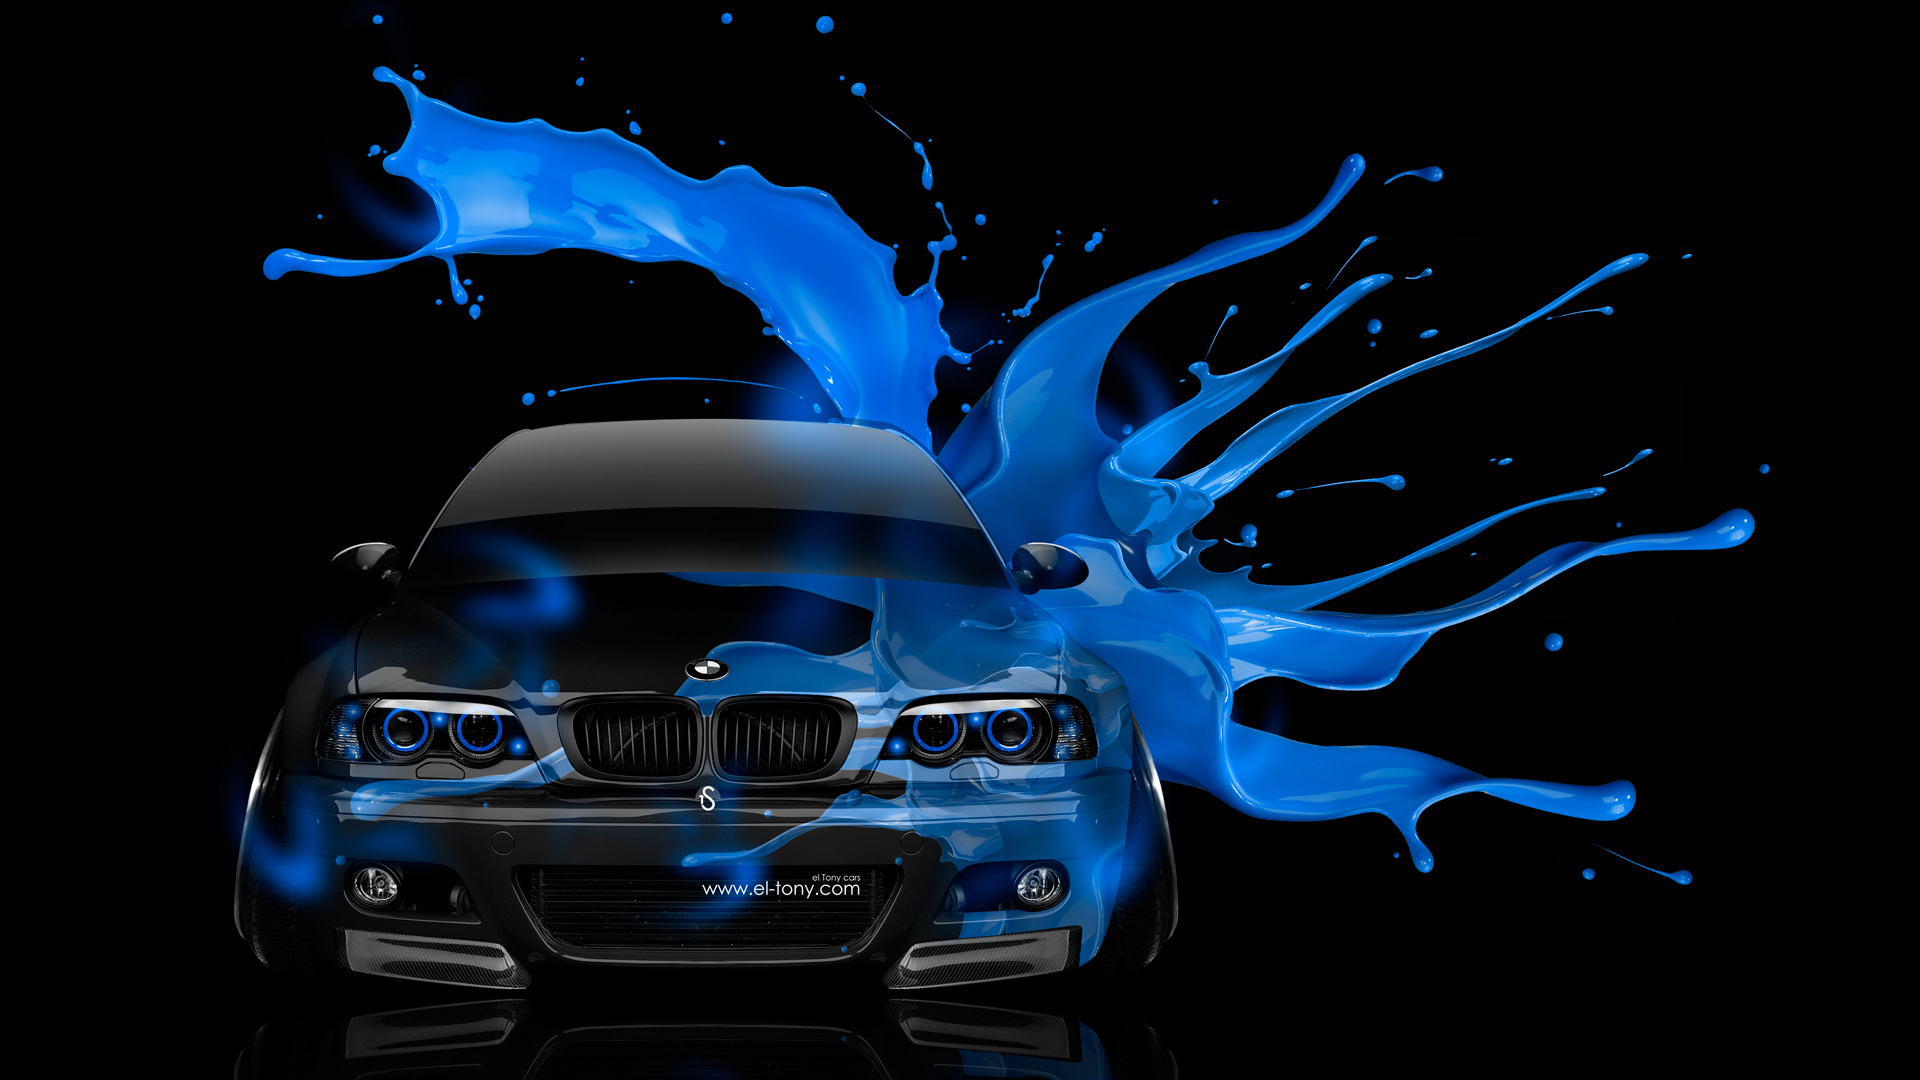 bmw m3 3d live wallpaper hd for android free download 9apps